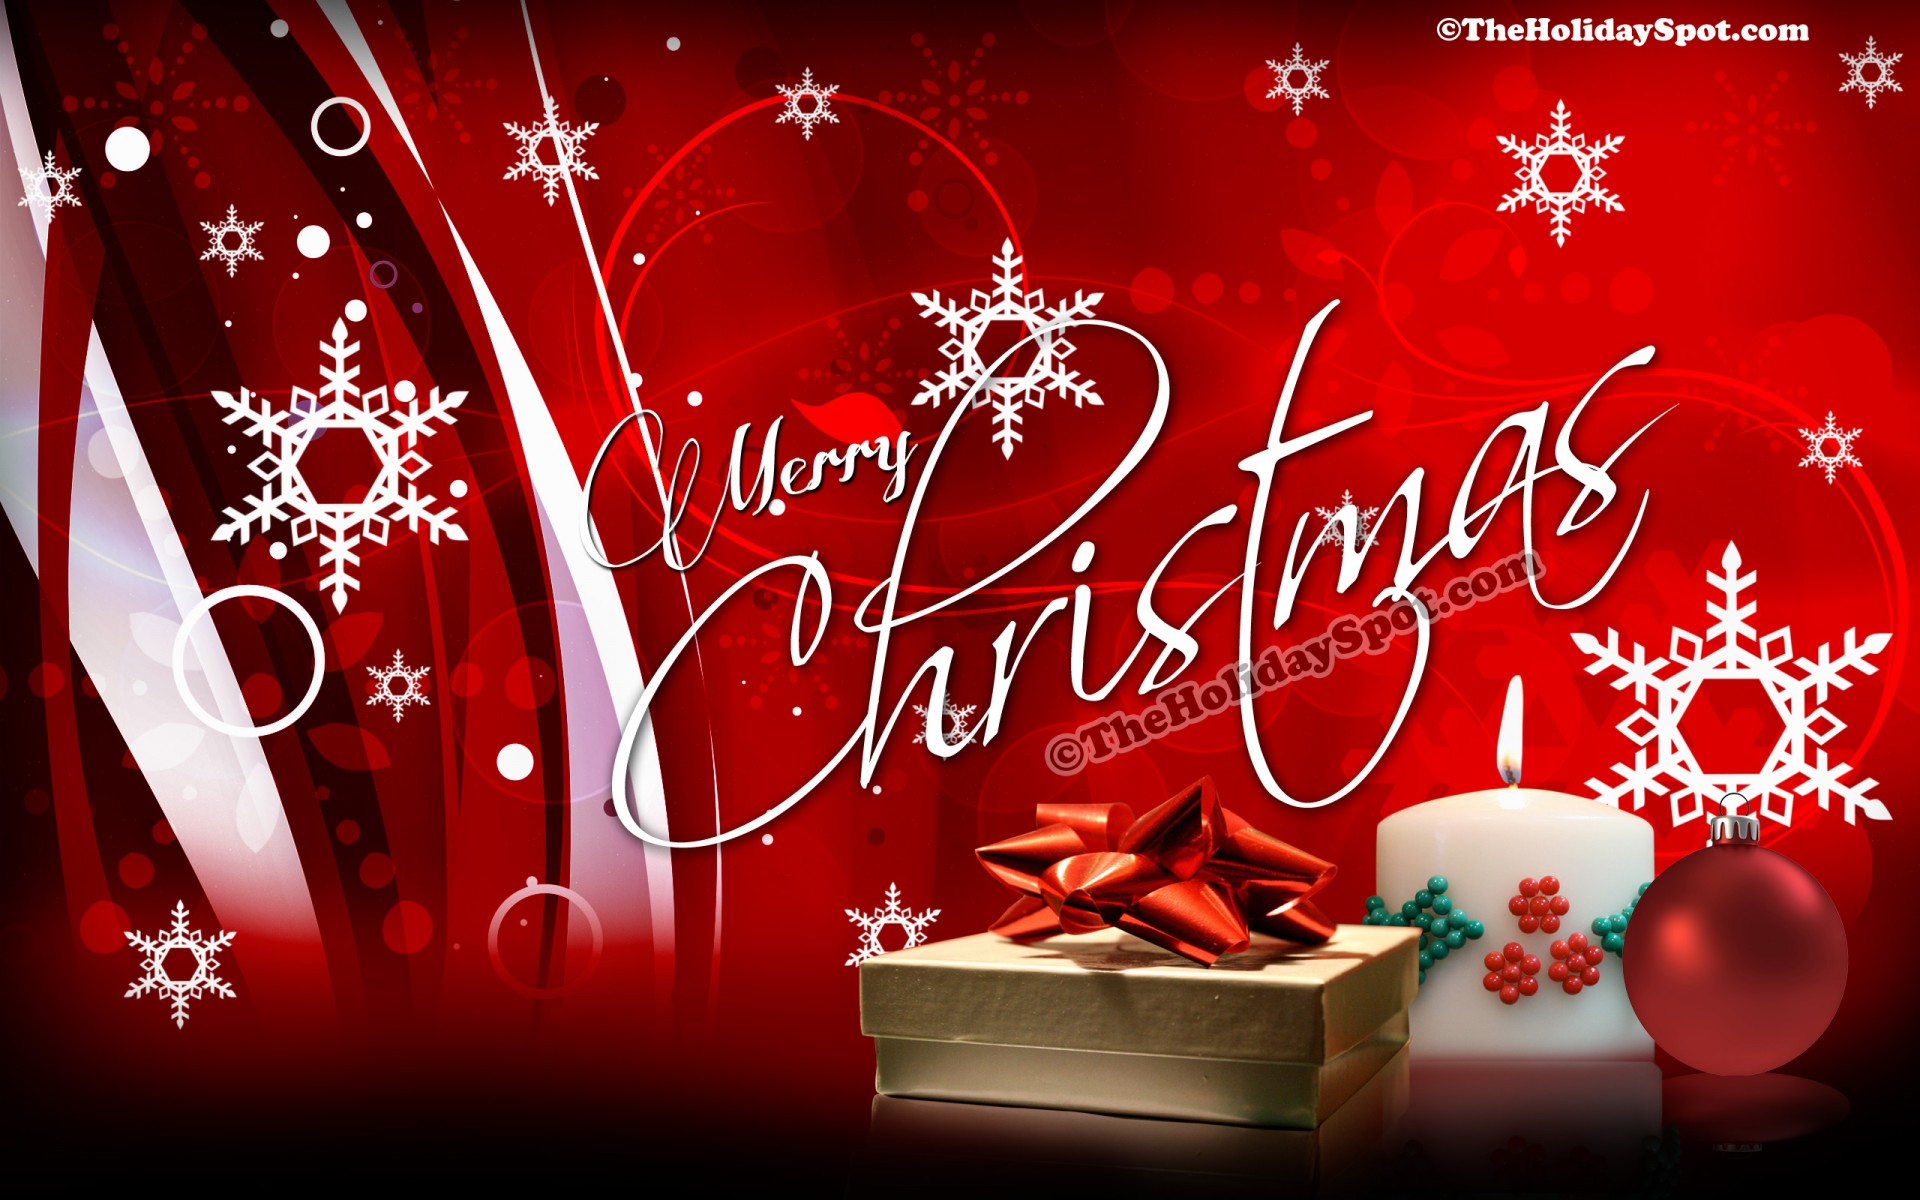 Top Hd Christmas Cards Wallpaper: HD Christmas Wallpaper 1920x1200